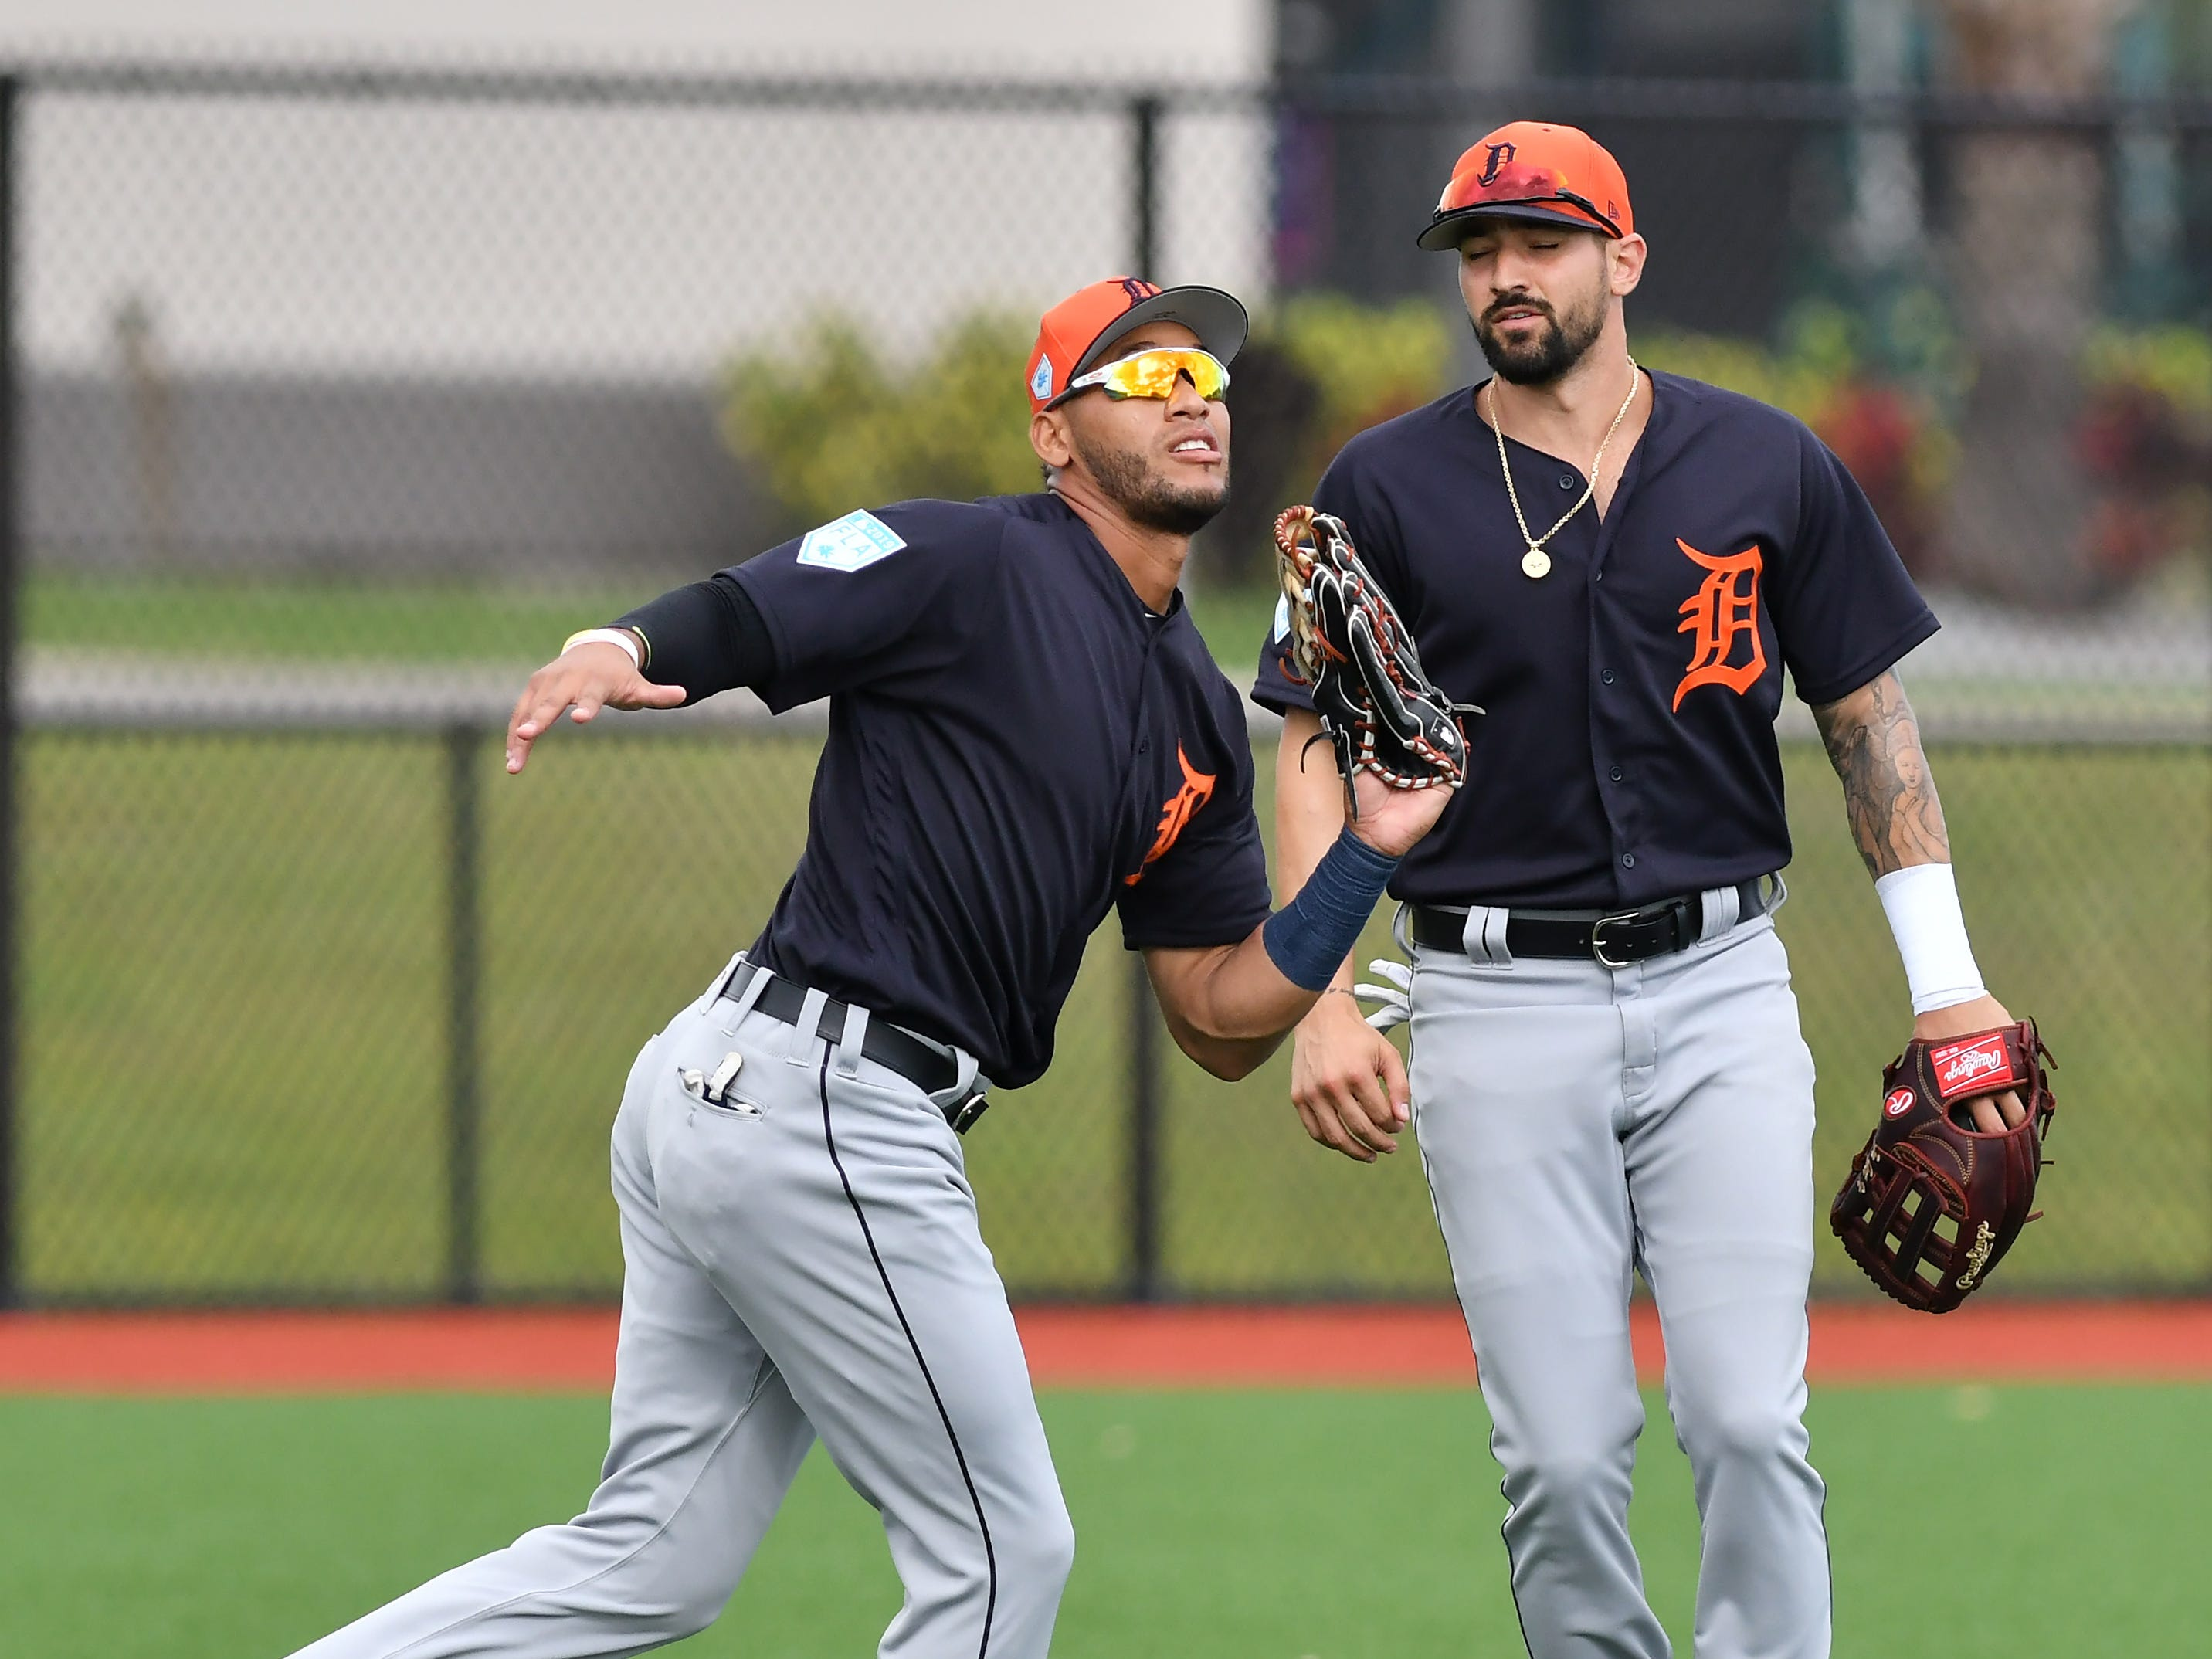 Tigers outfielder Victor Reyes, left, calls off Nick Castellanos and makes the catch during outfield drills.